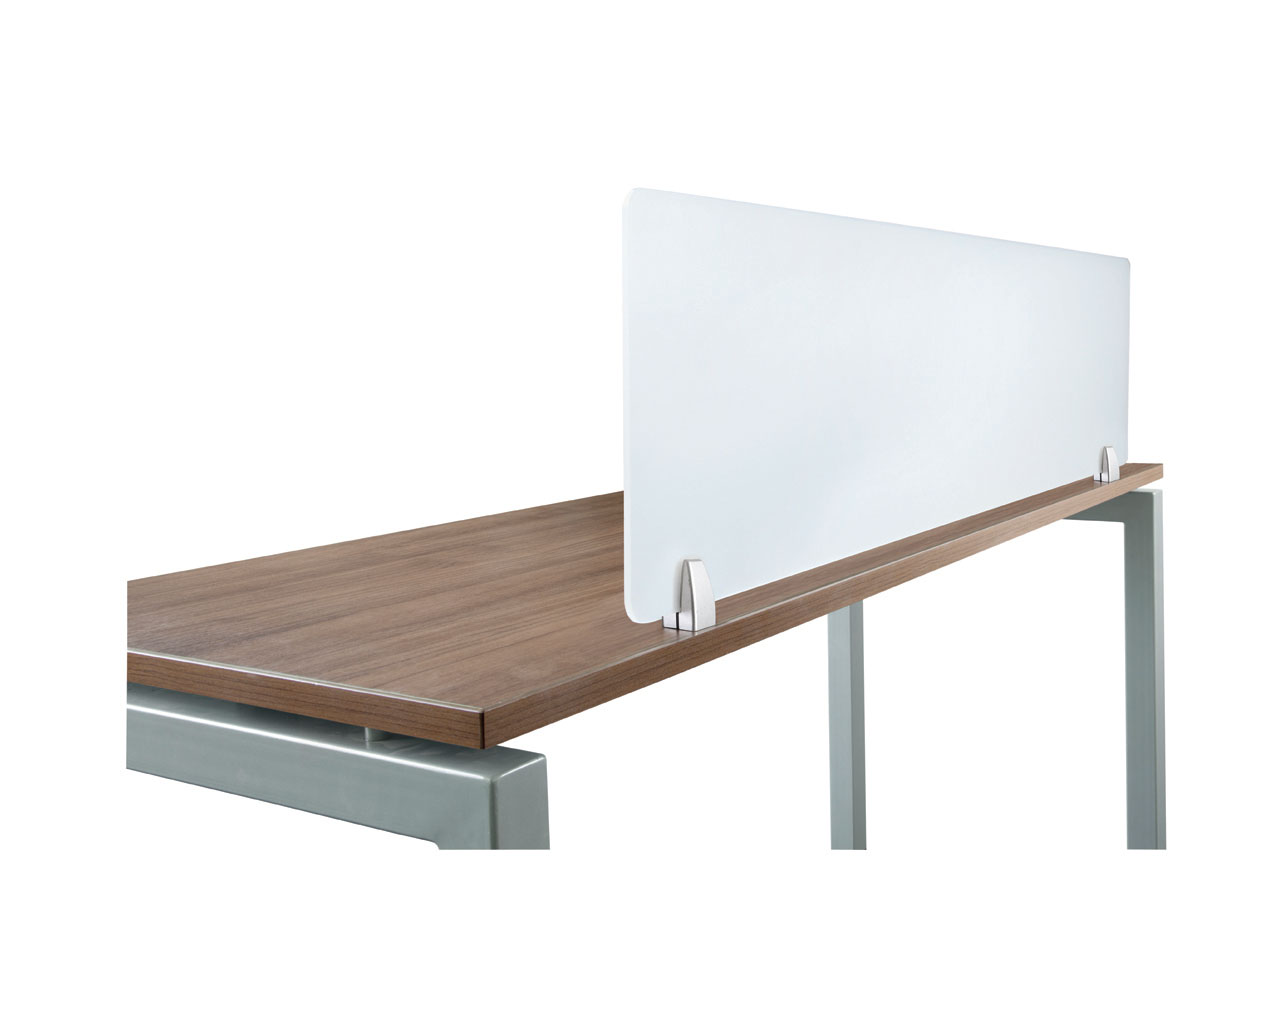 Acrylic Privacy Panel with Desk Top Mounting Hardware